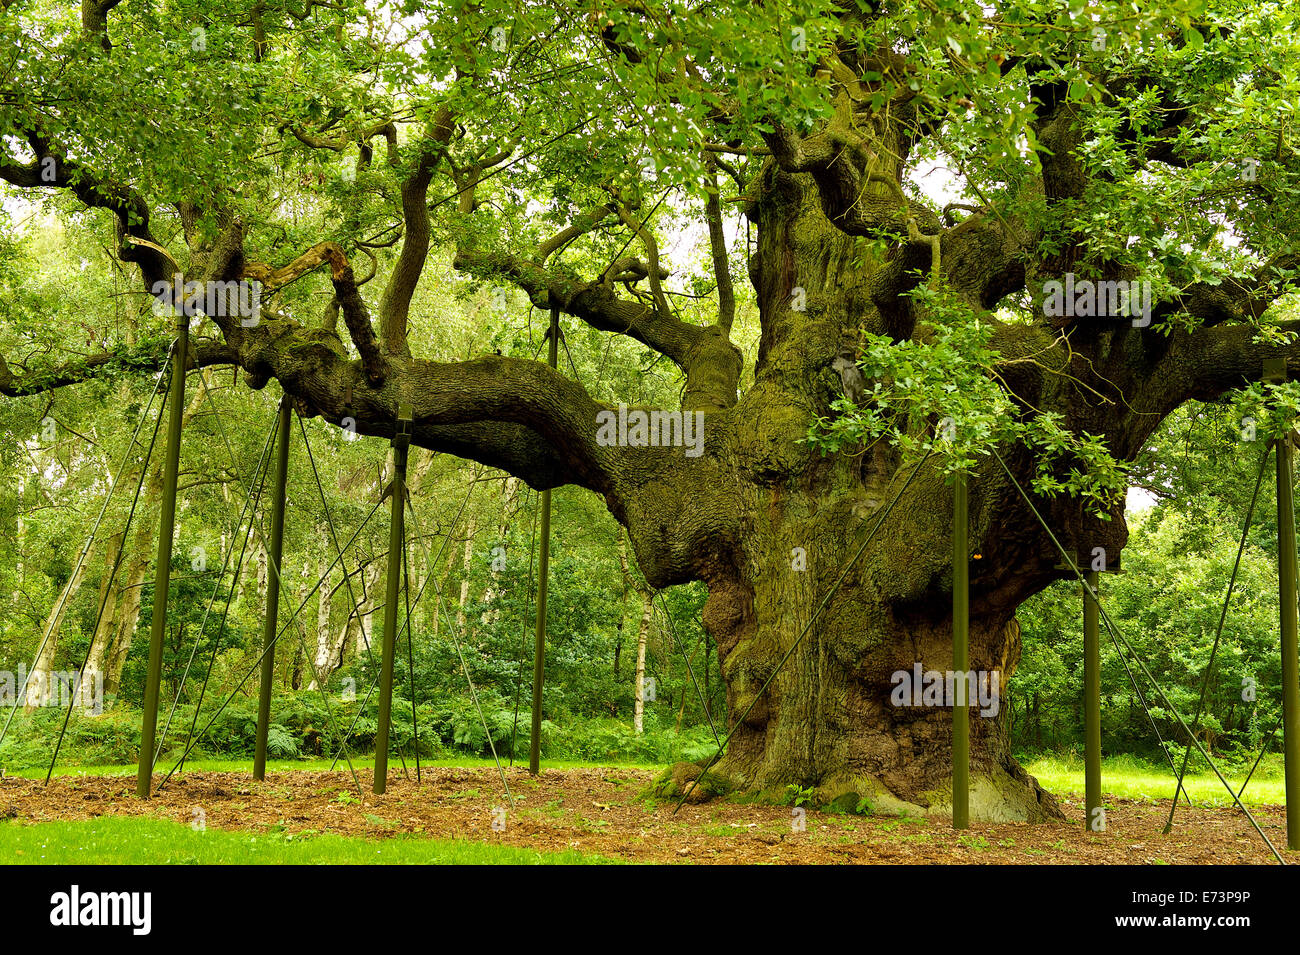 Mighty Oak Tree, Major Oak Tree, Robin Hood's Principle Hideout - Stock Image